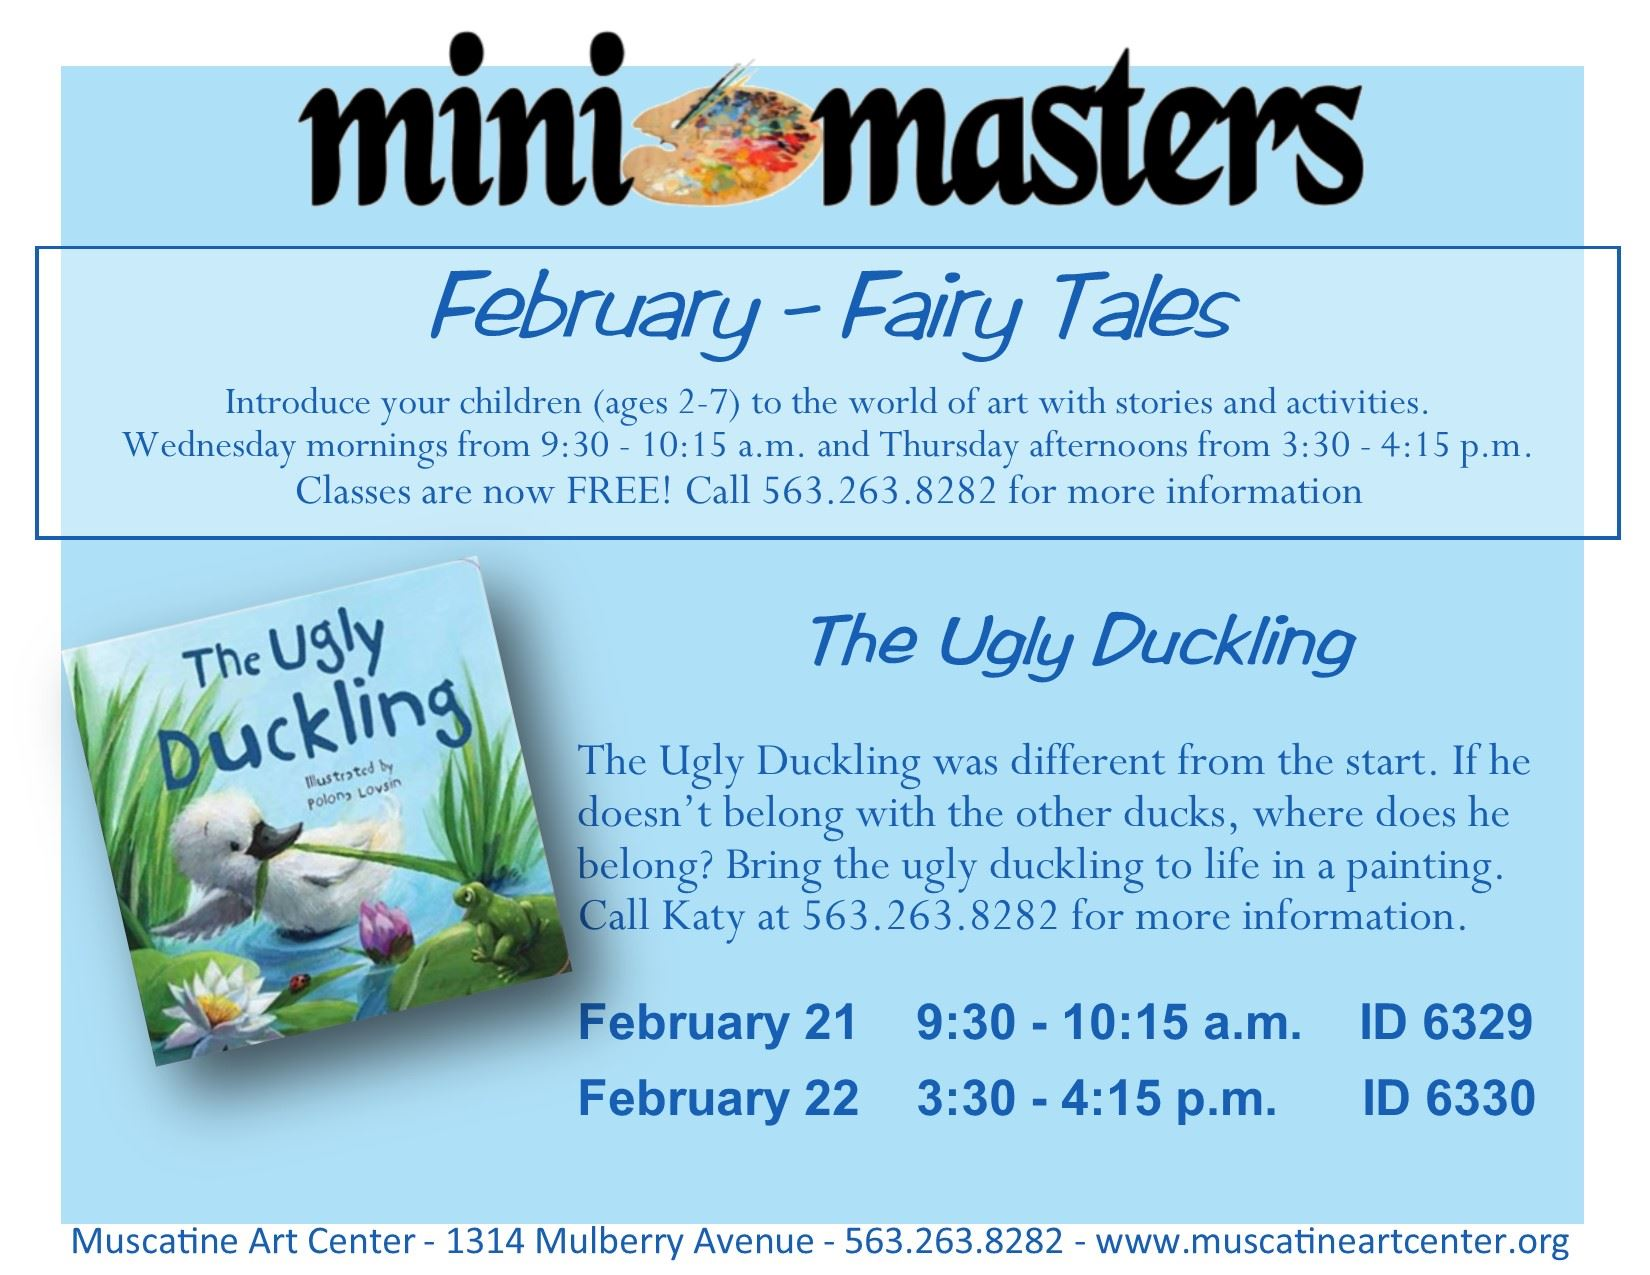 February 21-22 - Mini Masters -The Ugly Duckling